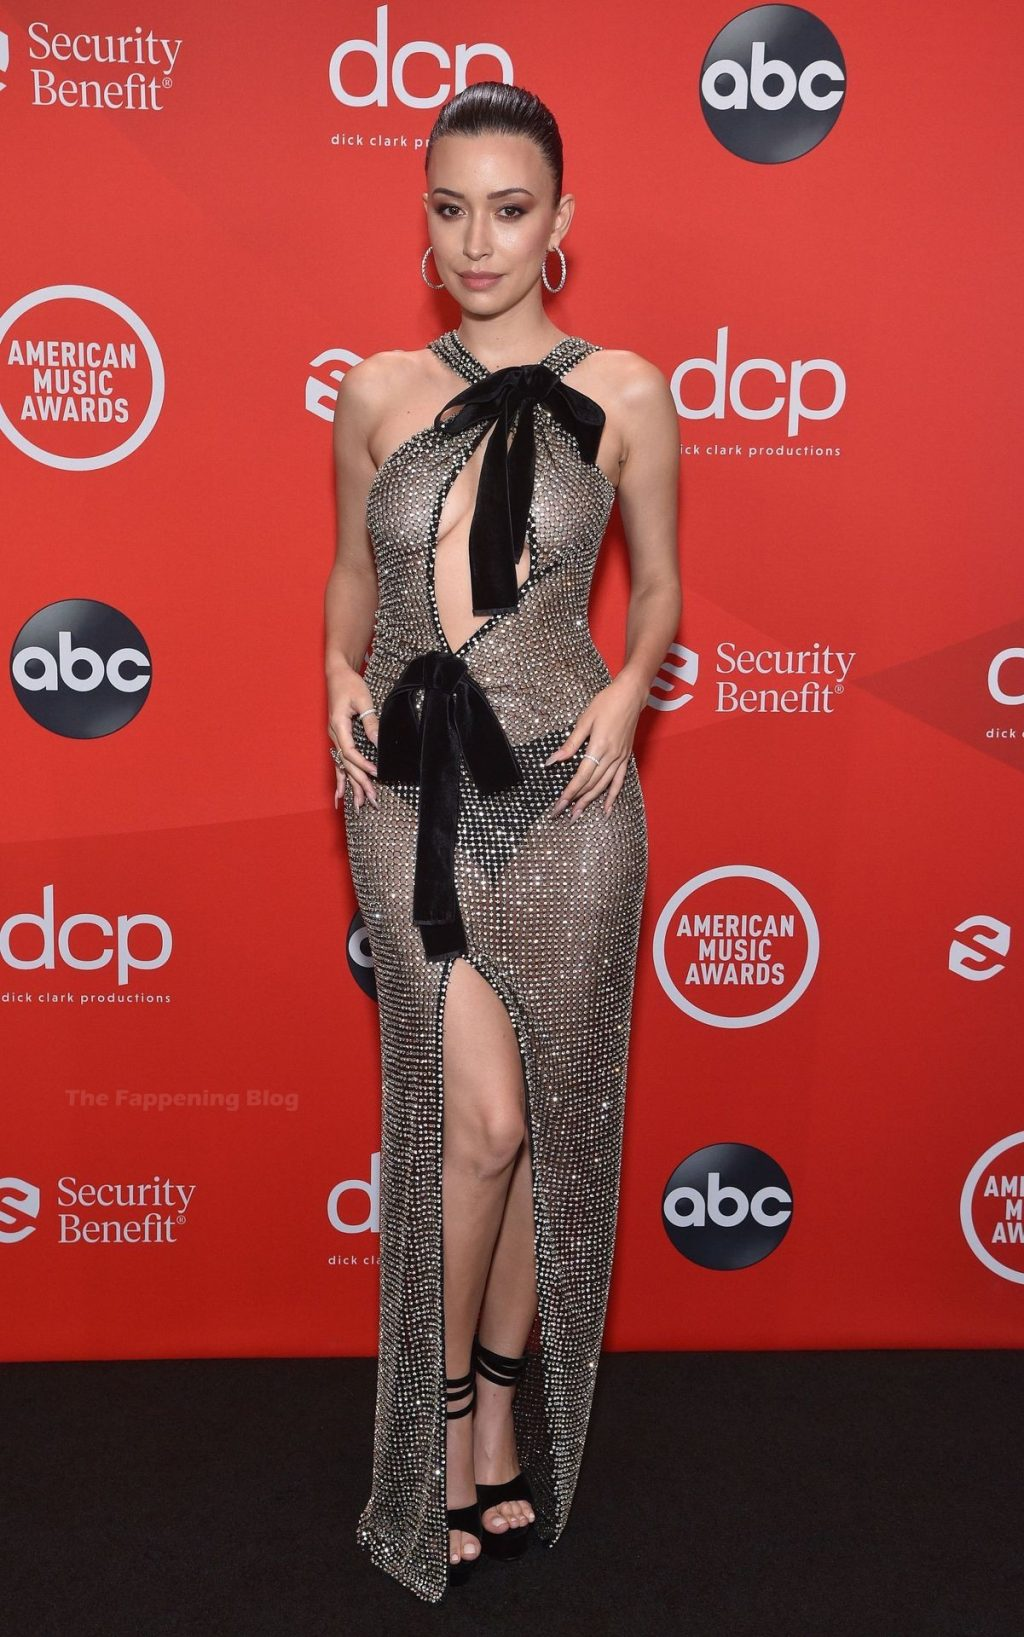 Christian Serratos Displays Her Sexy Figure at the American Music Awards (7 Photos)